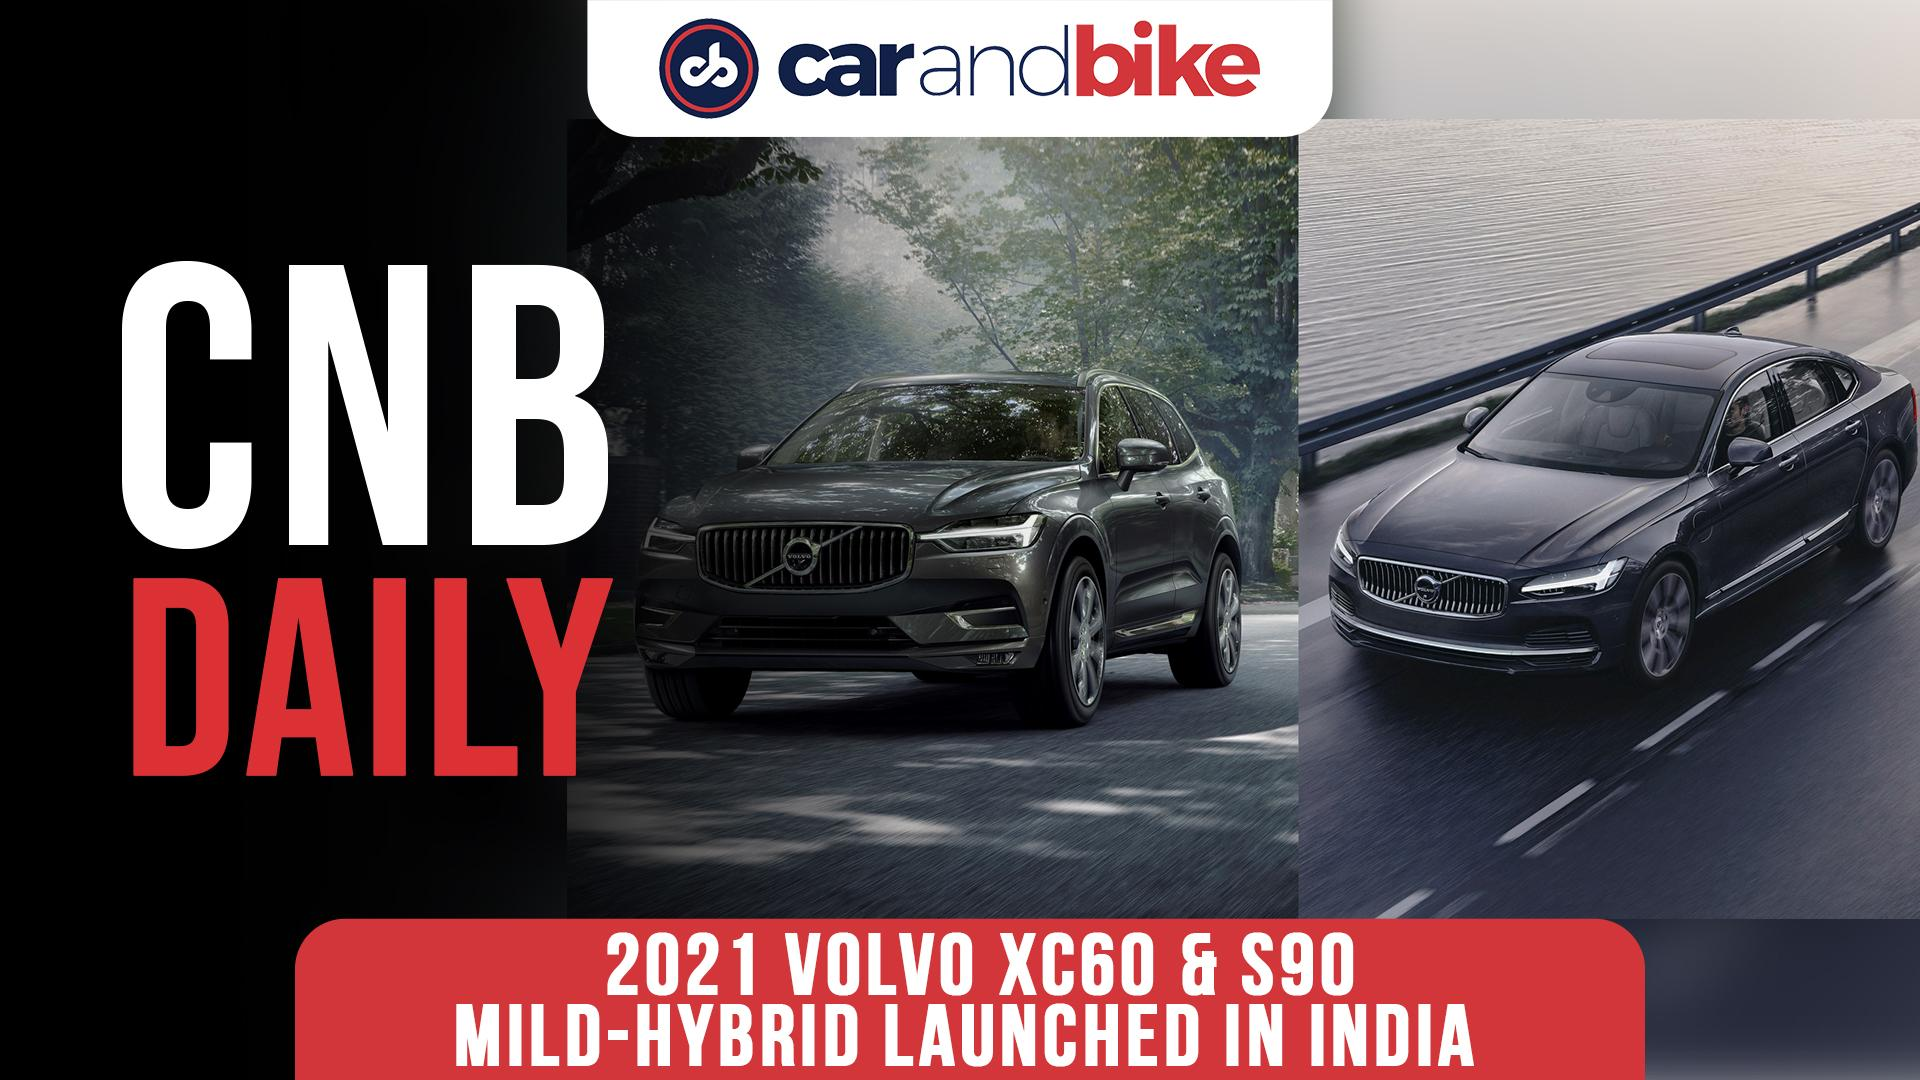 2021 Volvo XC60 & S90 Mild-Hybrid launched in India